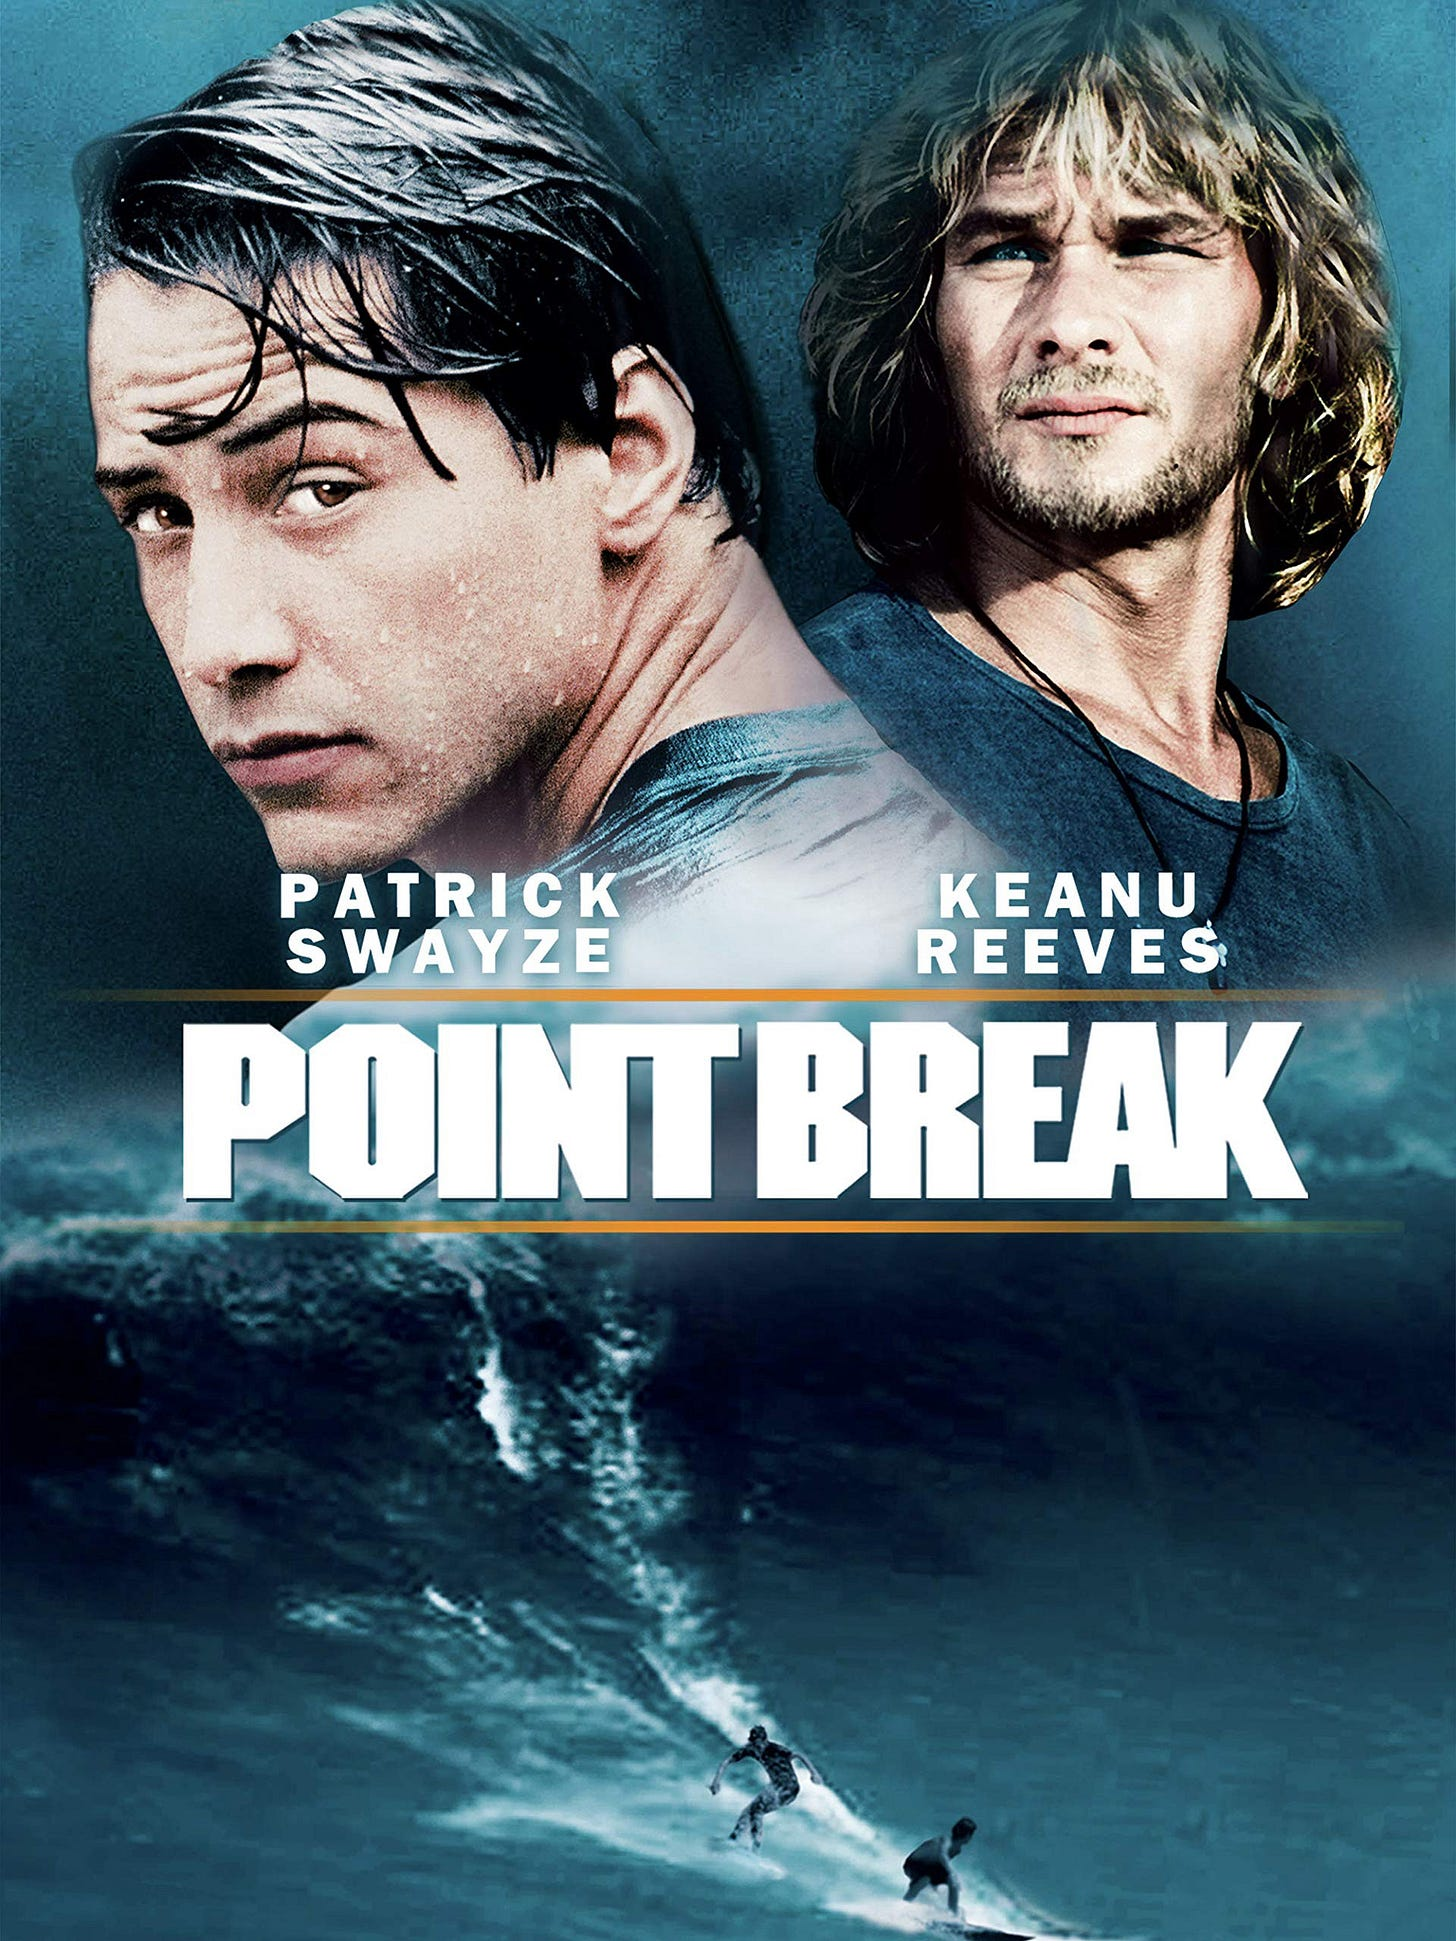 Point Break Movie Poster with Patrick Swayze and Keanu Reeves on the poster.